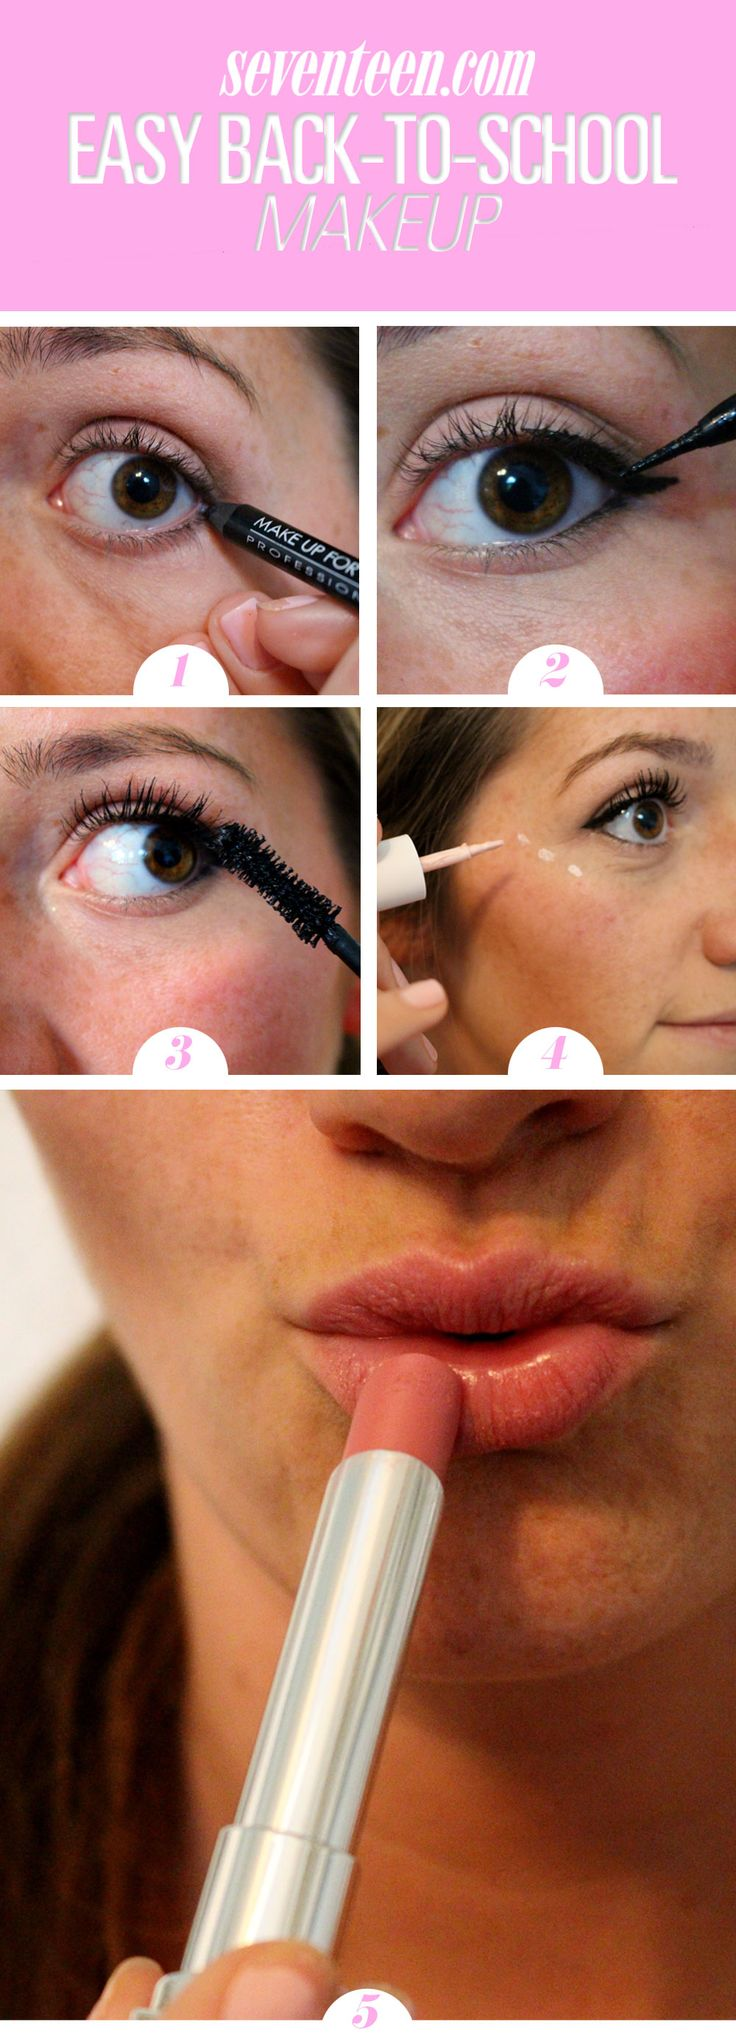 Easy Back-to-School Makeup Tutorial You Can Do in Under 5 Minutes